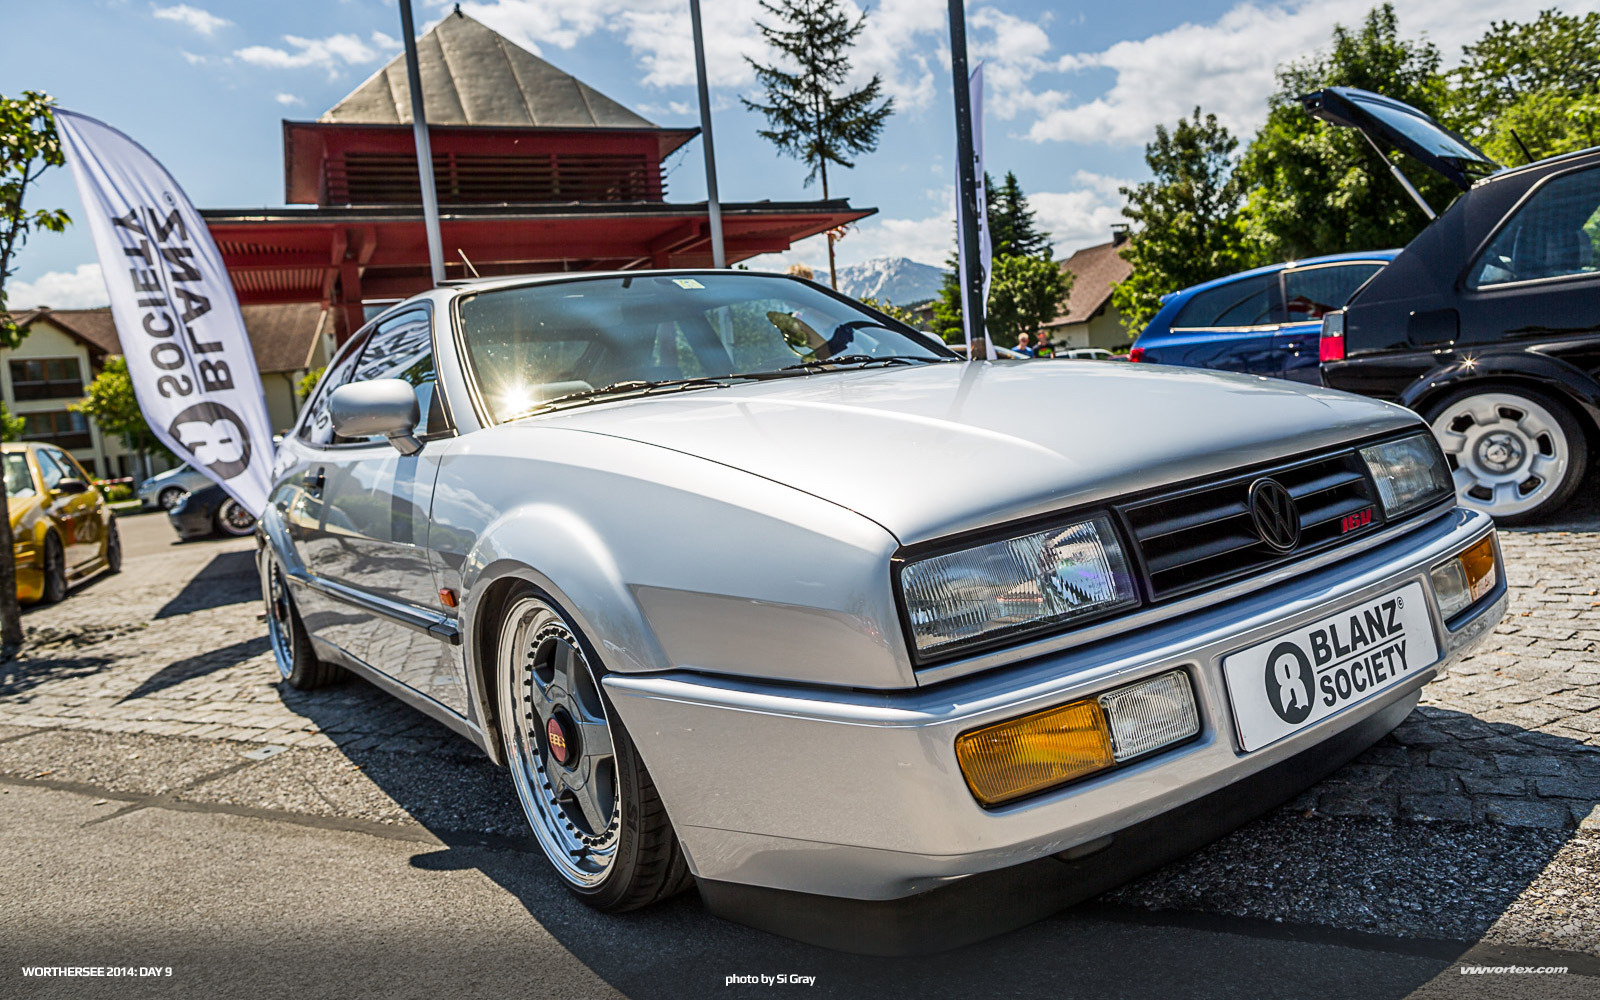 2014-Worthersee-Day-9-Si-Gray-378